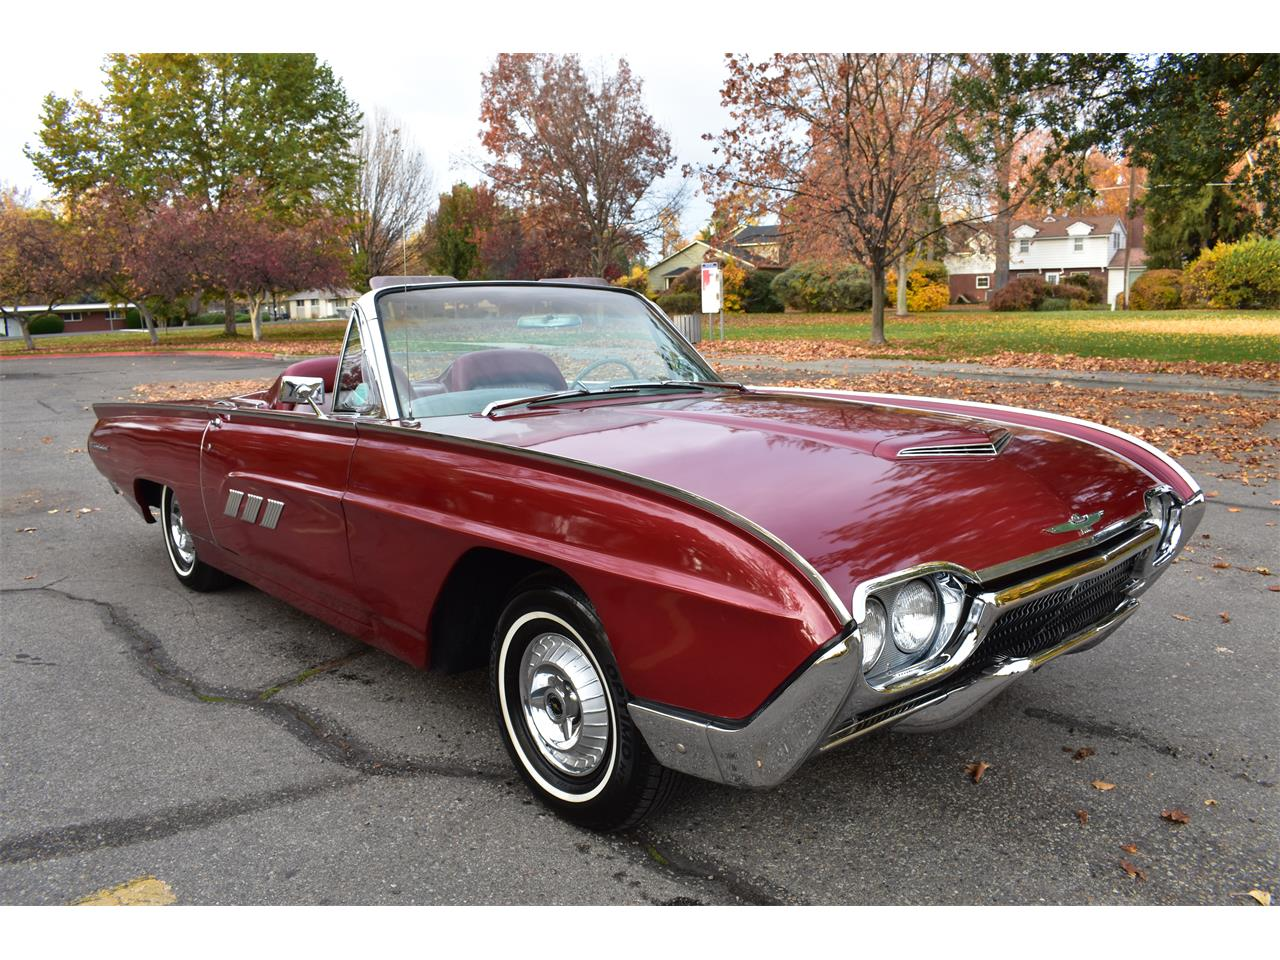 Large picture of classic 63 ford thunderbird 26900 00 offered by rosss valley auto sales